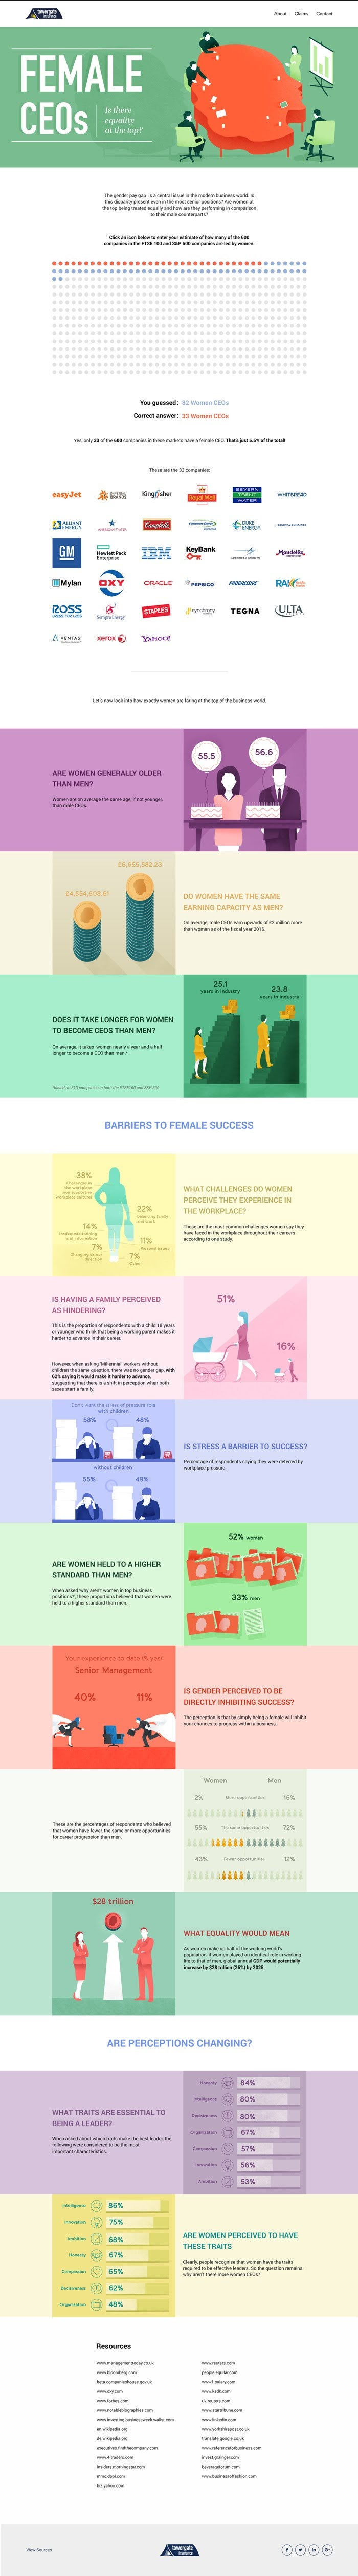 Female CEOs: Is There Equality At The Top? #Infographic